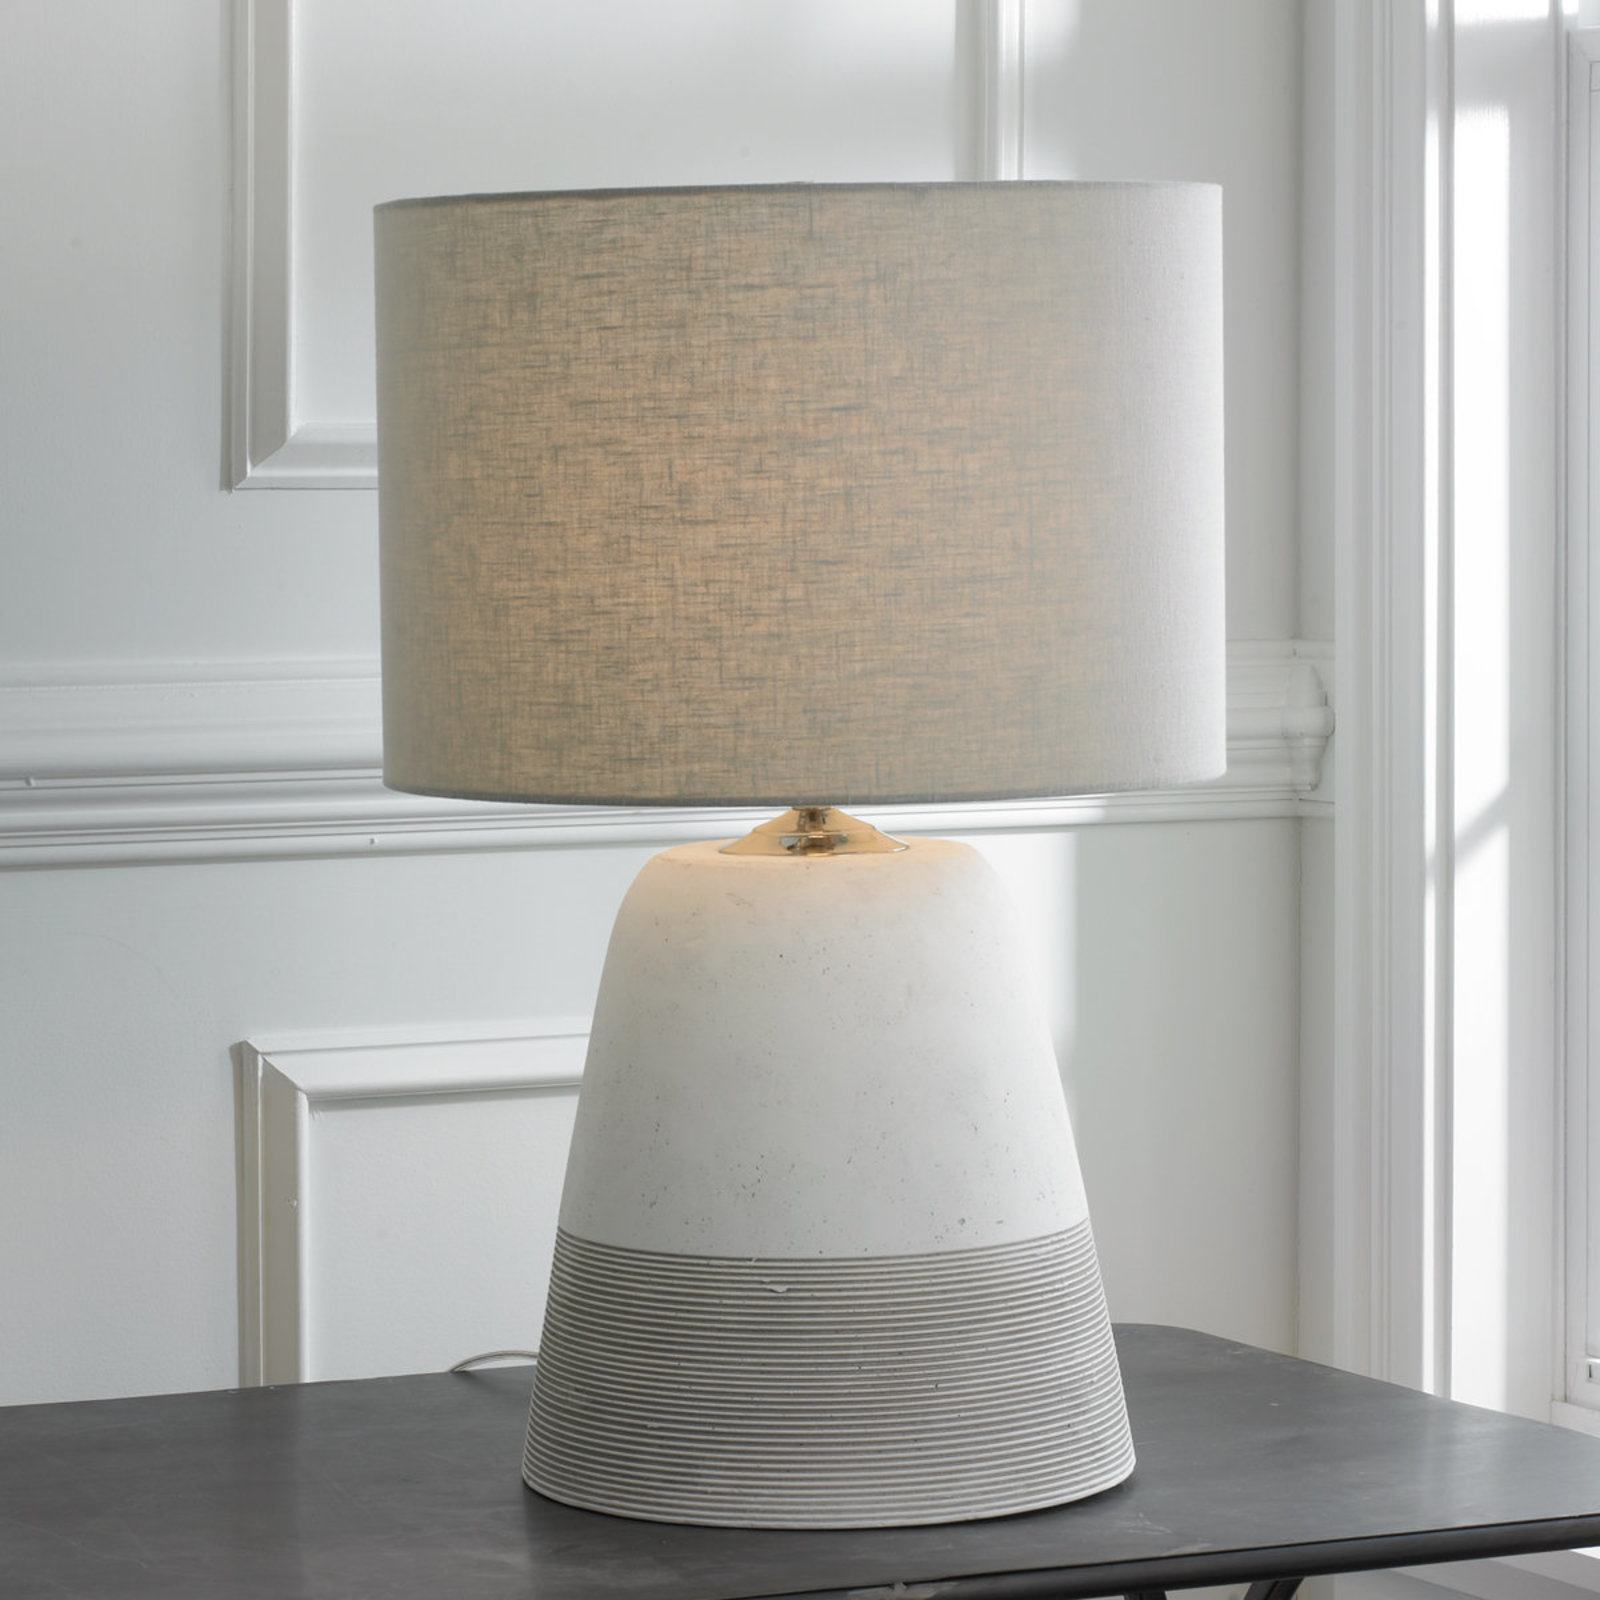 lamp for small table grooved concrete table lamp - small light_gray ZQUXLIZ